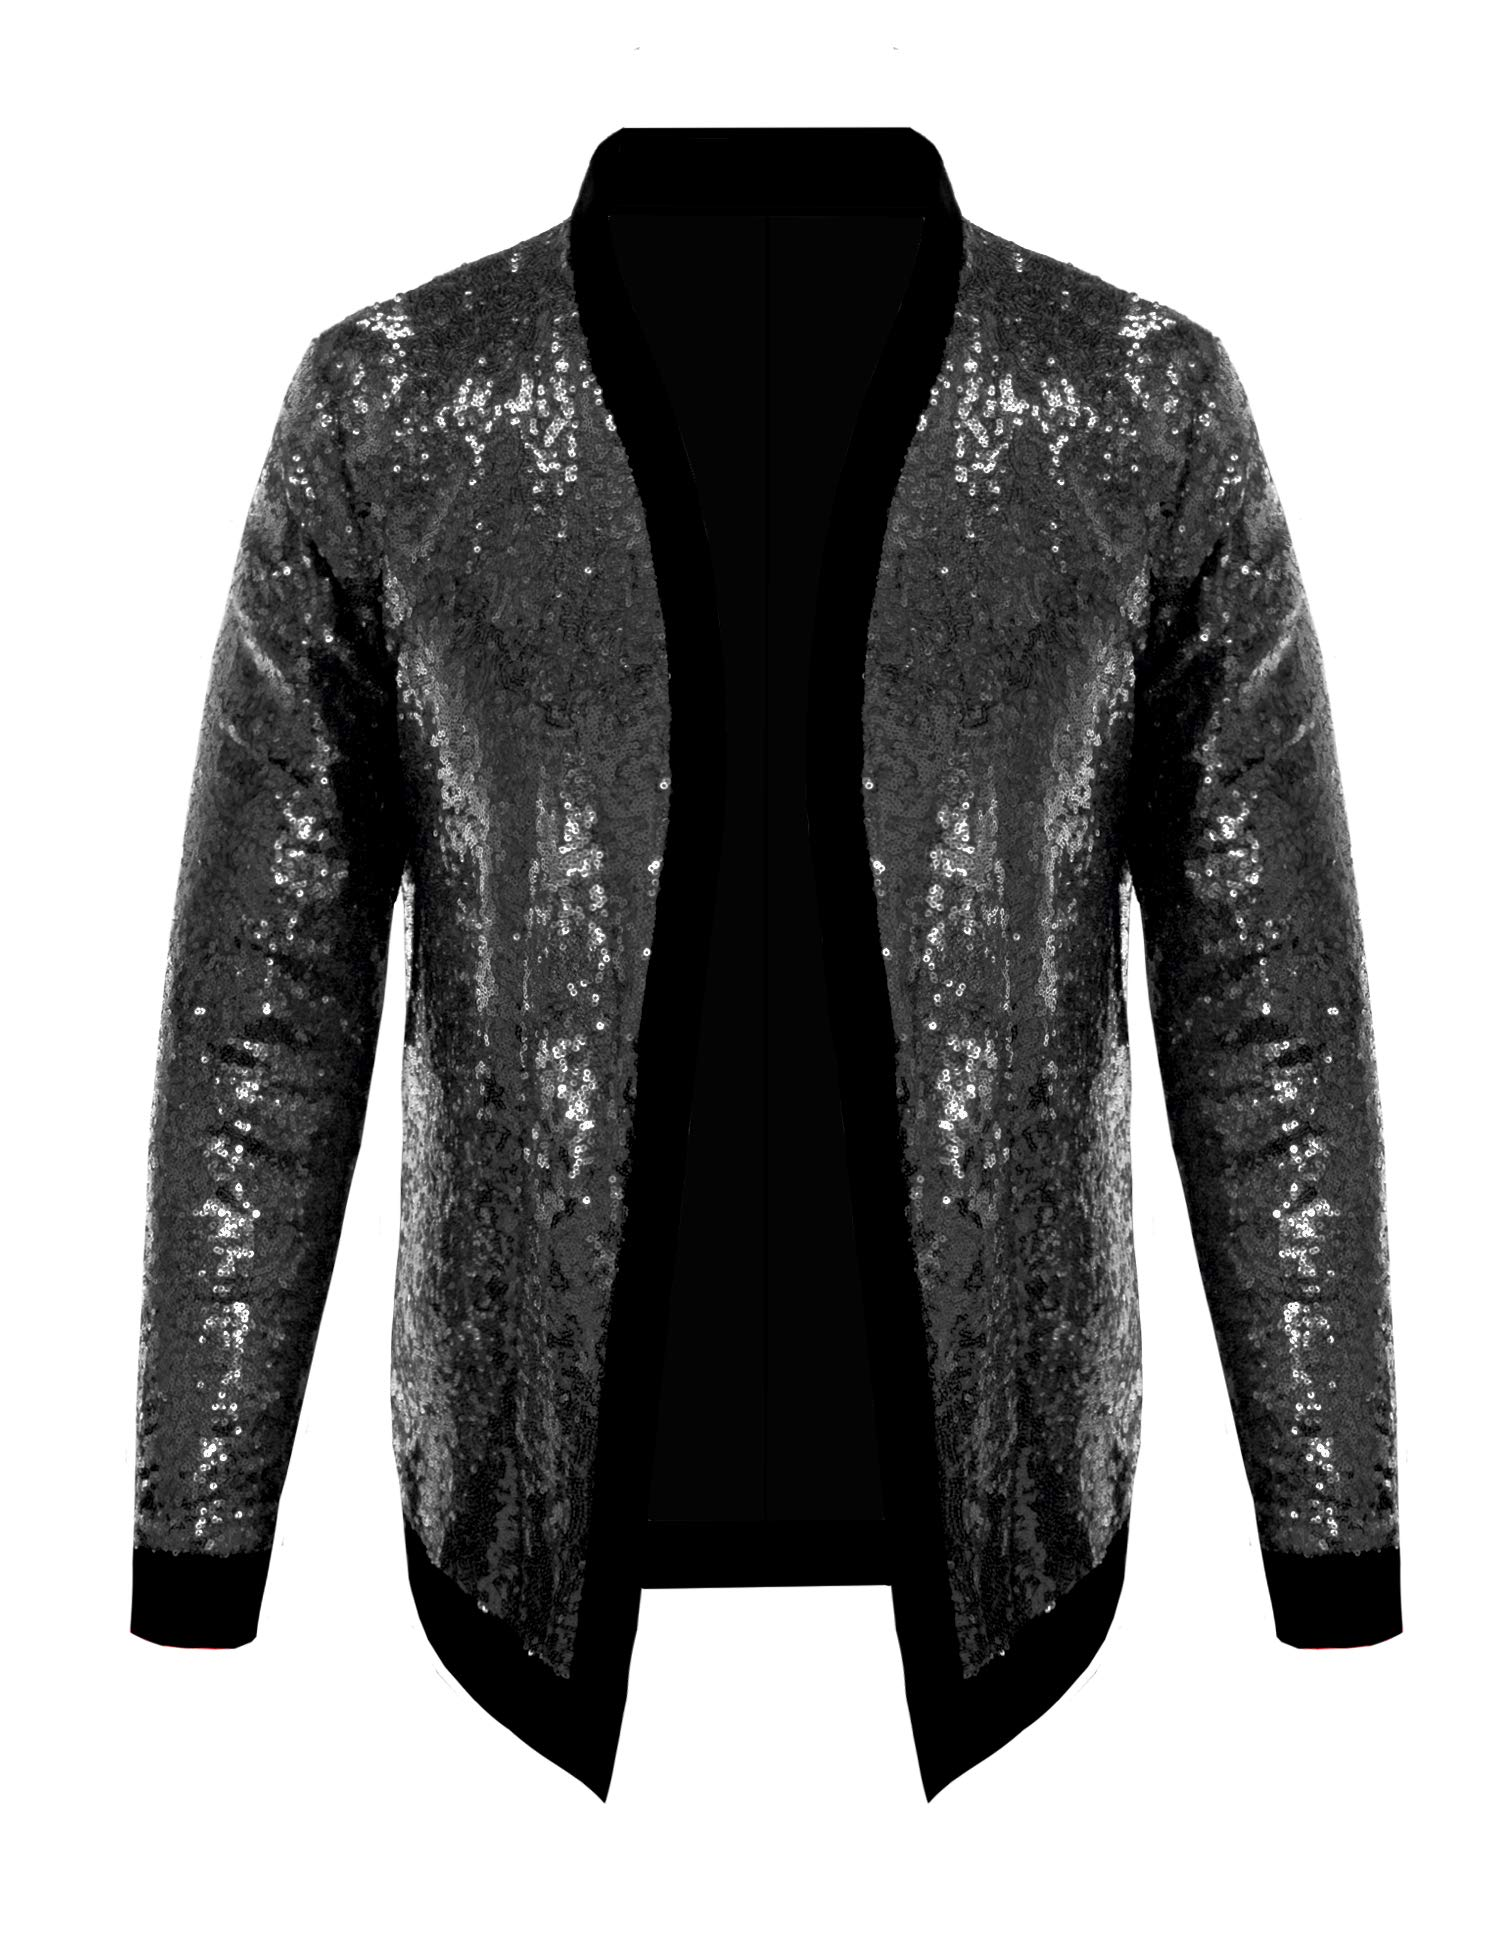 Pacinoble Mens Cardigan All Over Sparkle Sequin Open Front Long Sleeve Jacket with Ribbed Cuffs (Black, Medium) by Pacinoble